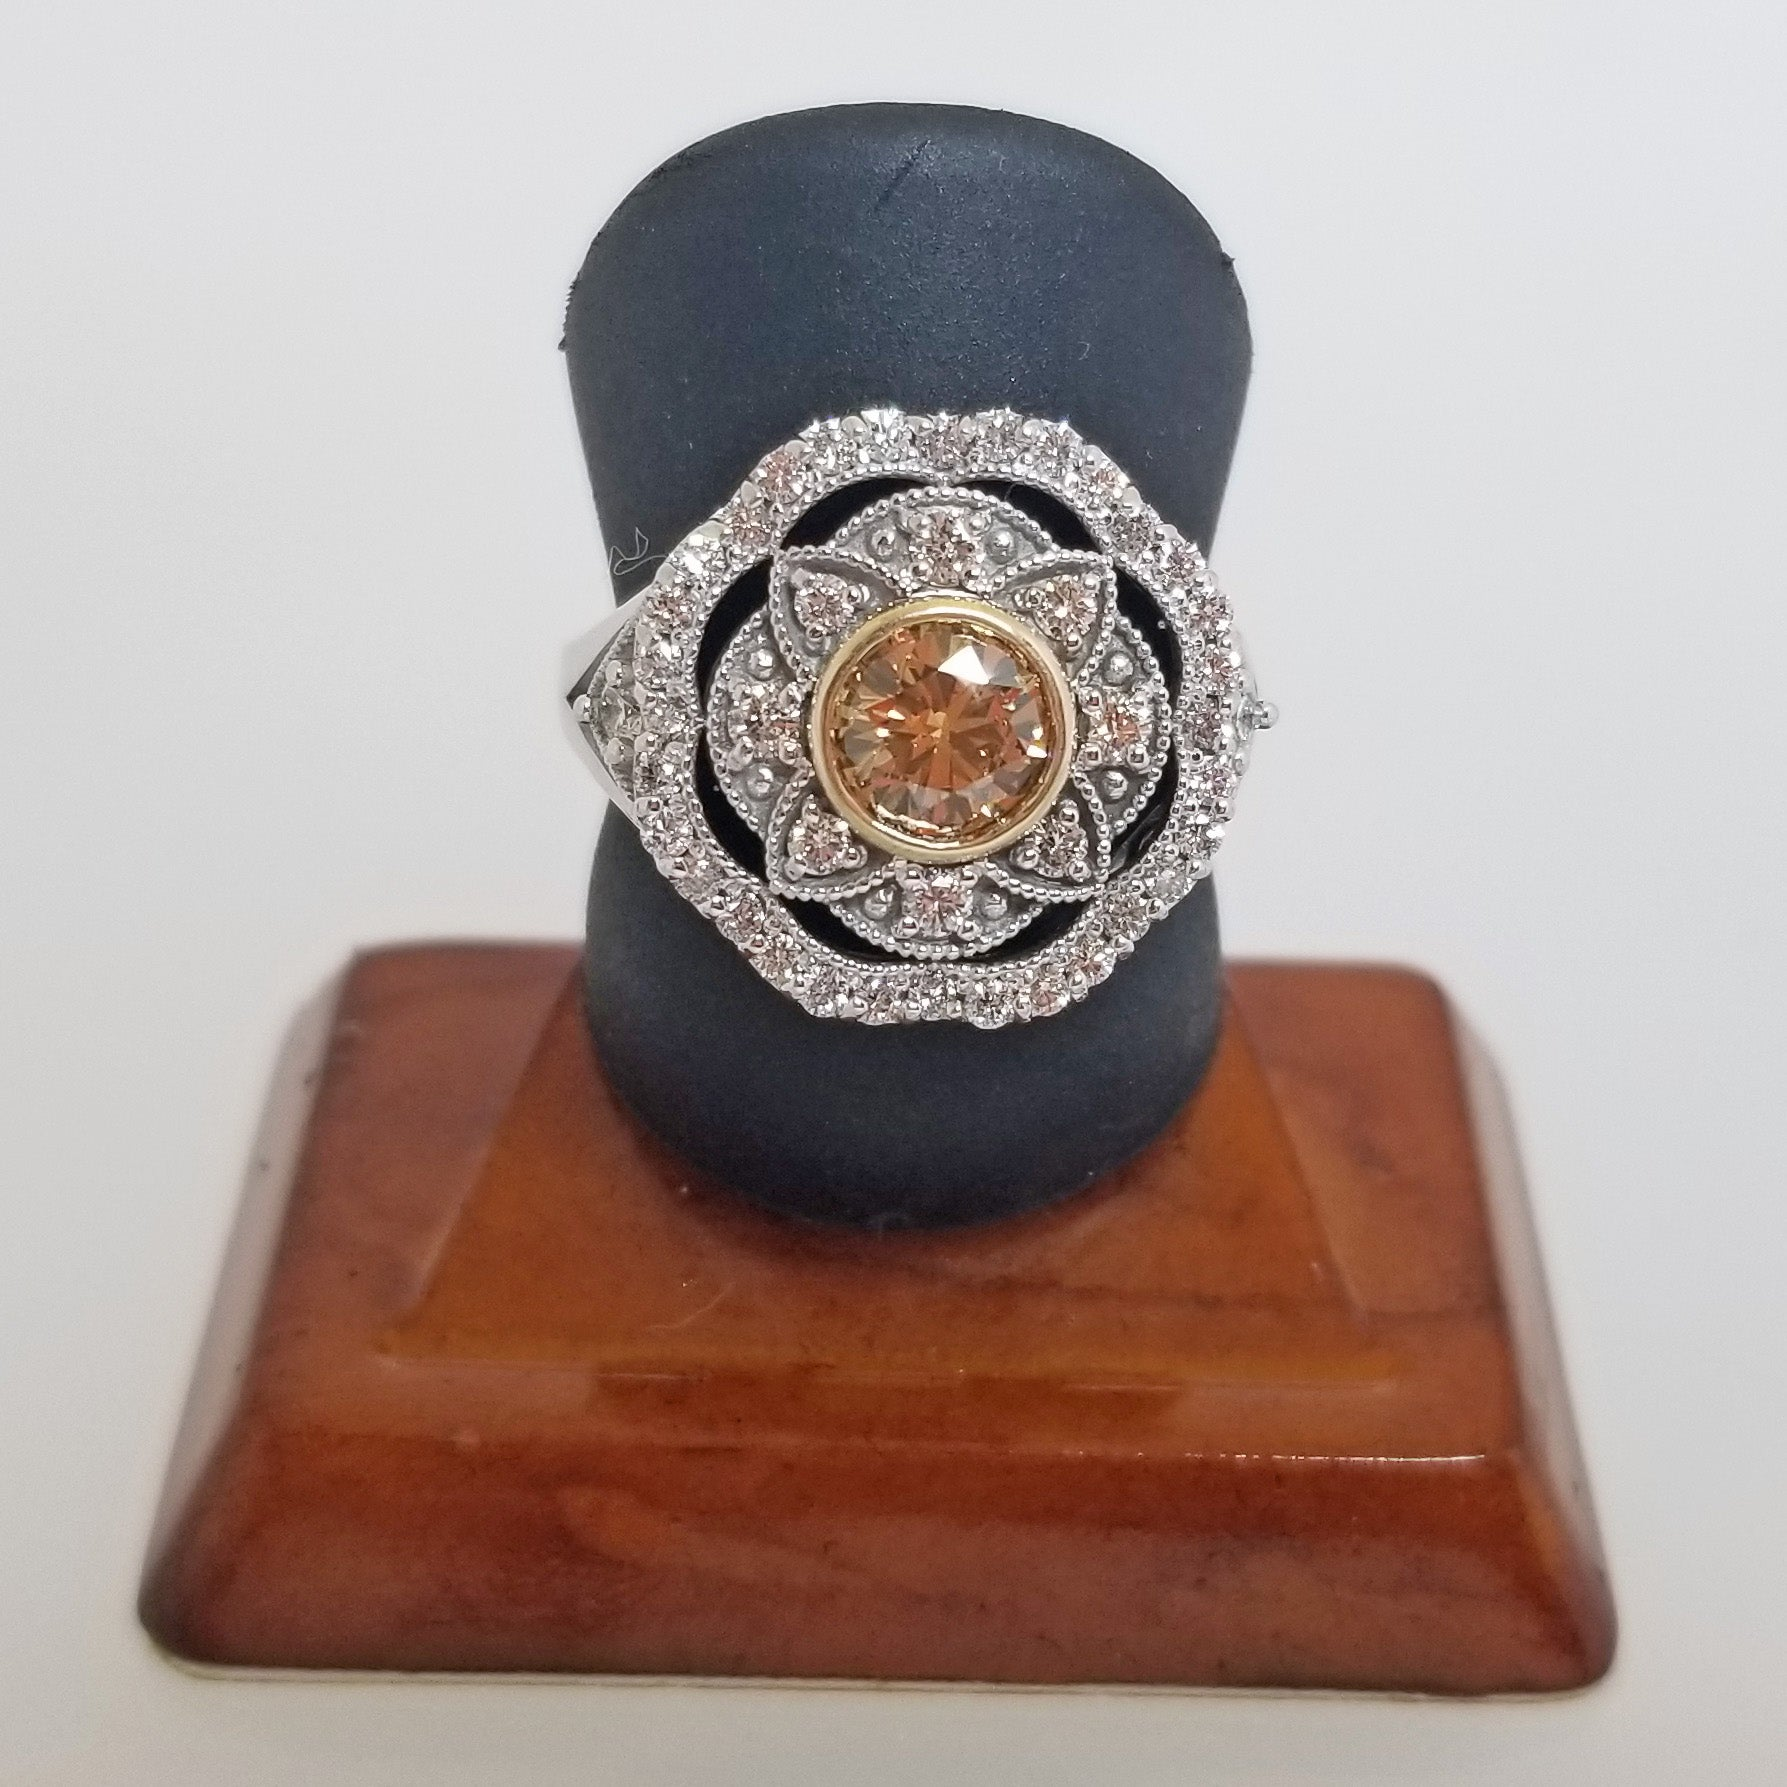 Ready to ship Cognac Diamond right hand ring with a vintage look in 14k yellow and white gold